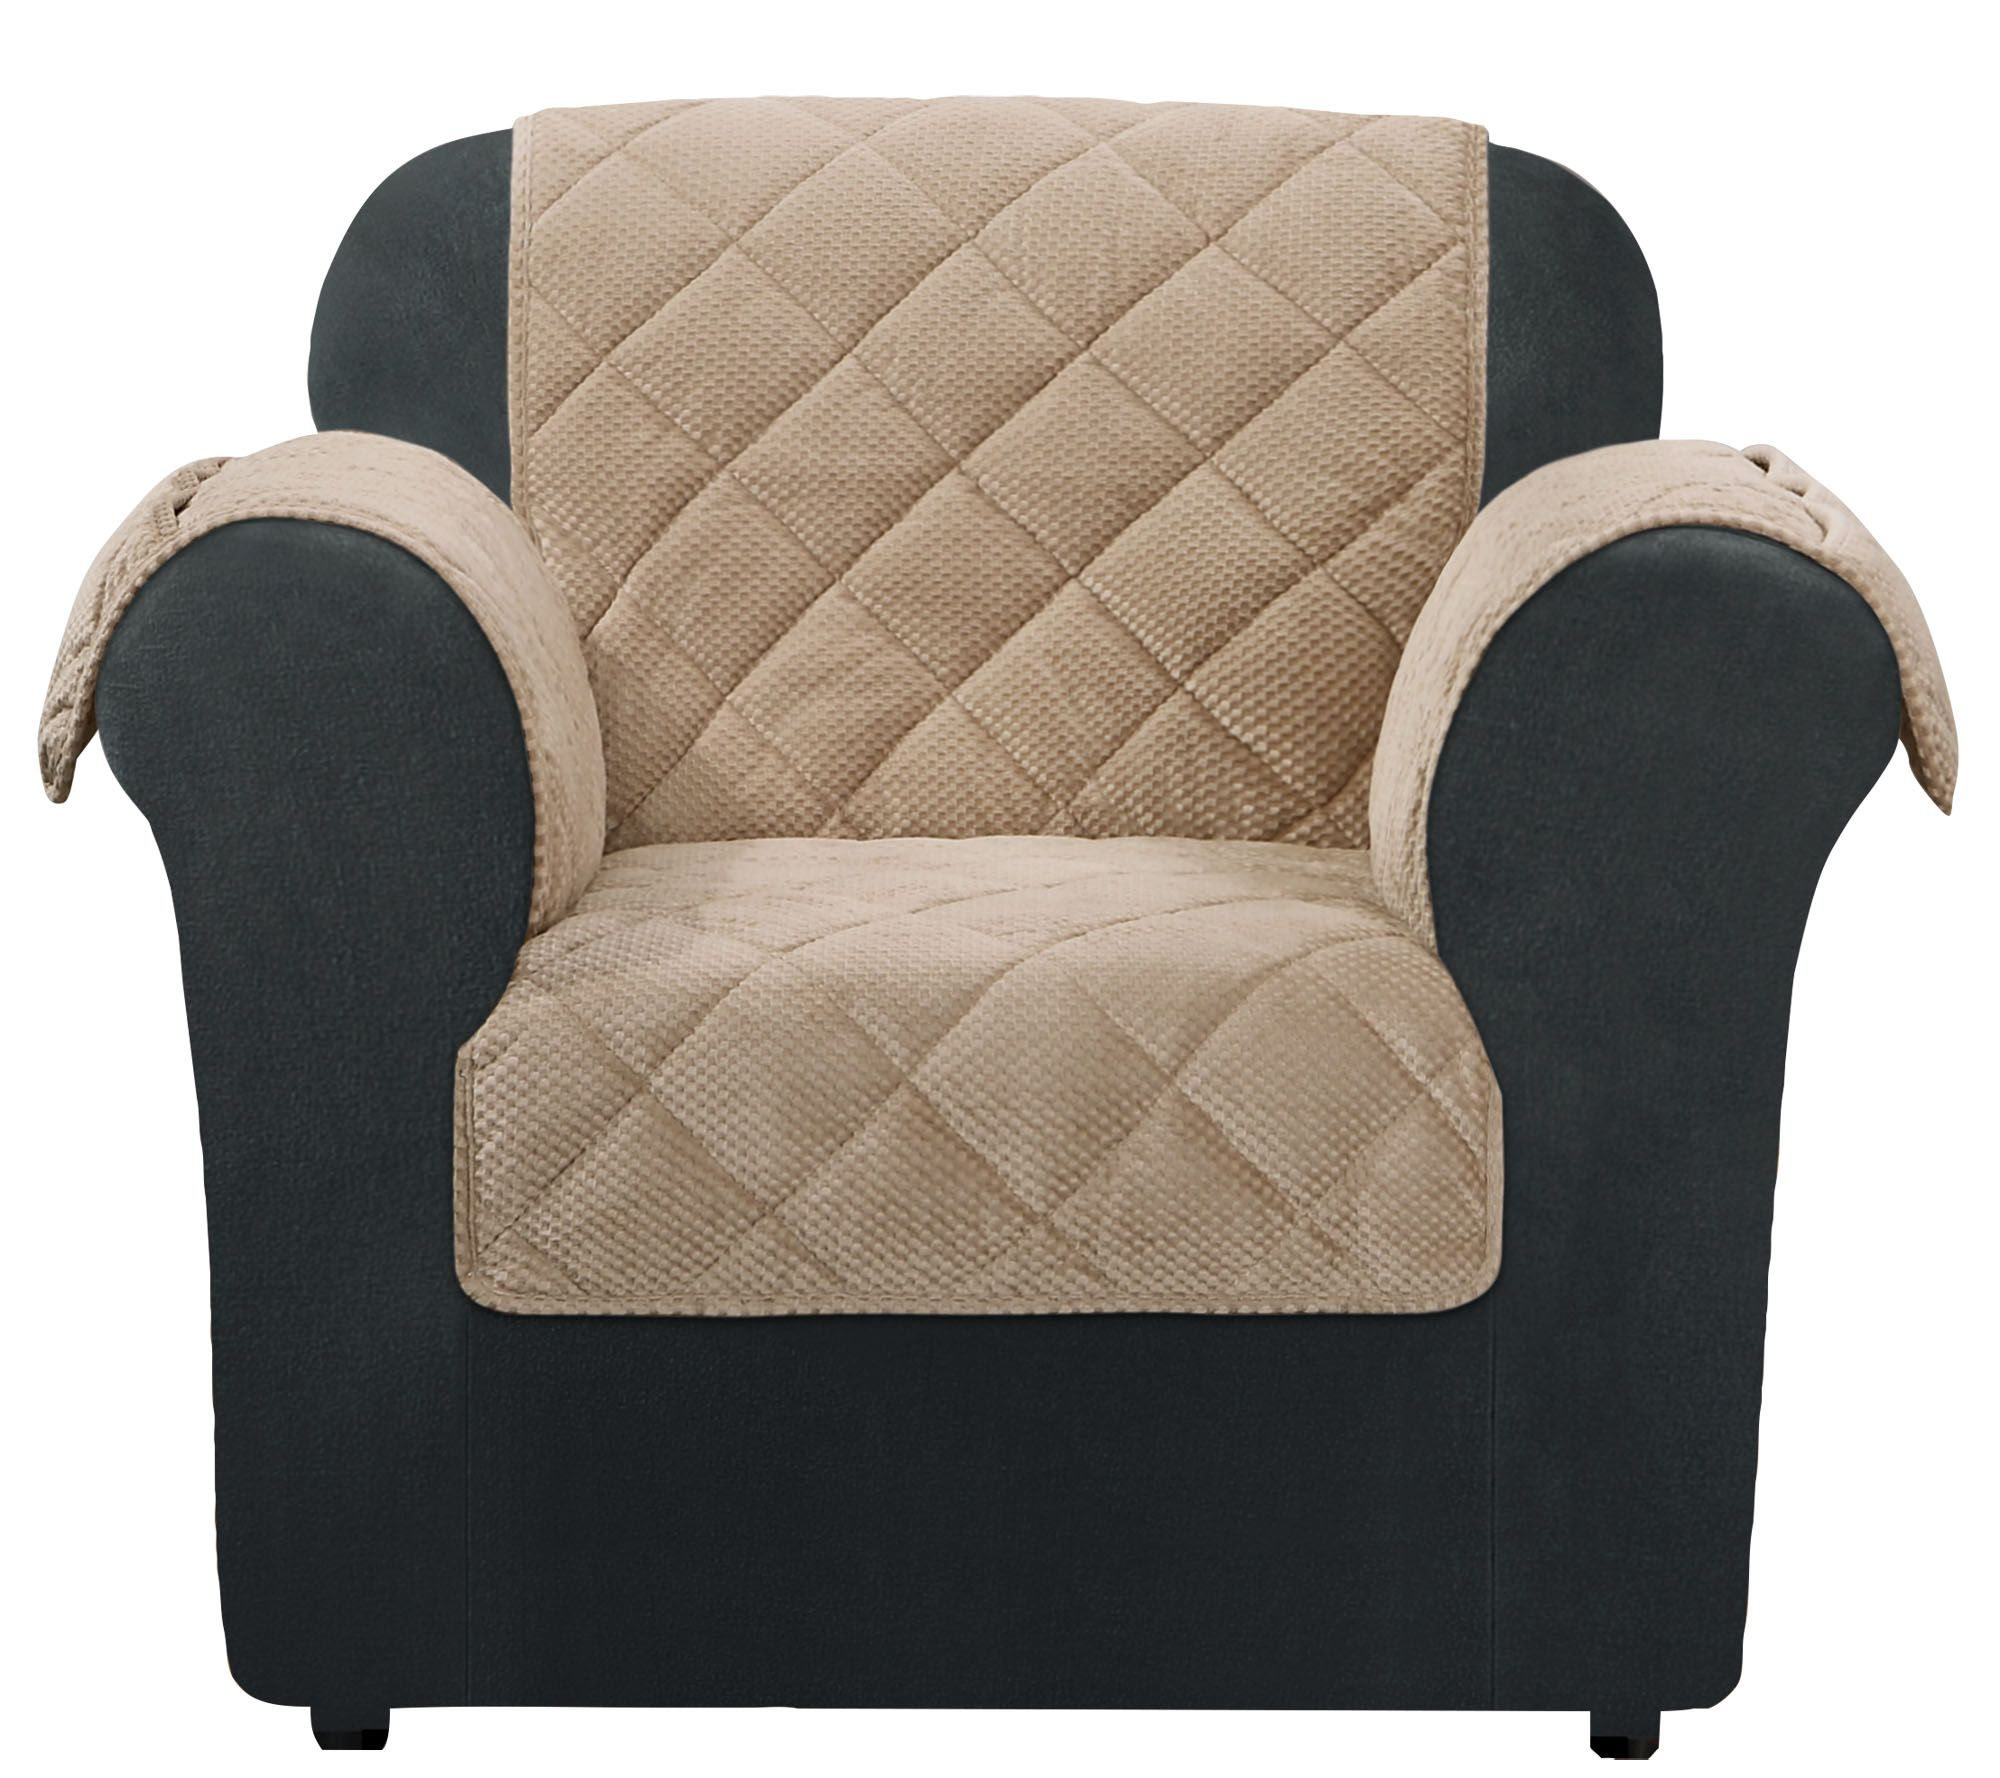 Sure Fit Chair Furniture Cover With Textured Pique Fabric   H209470